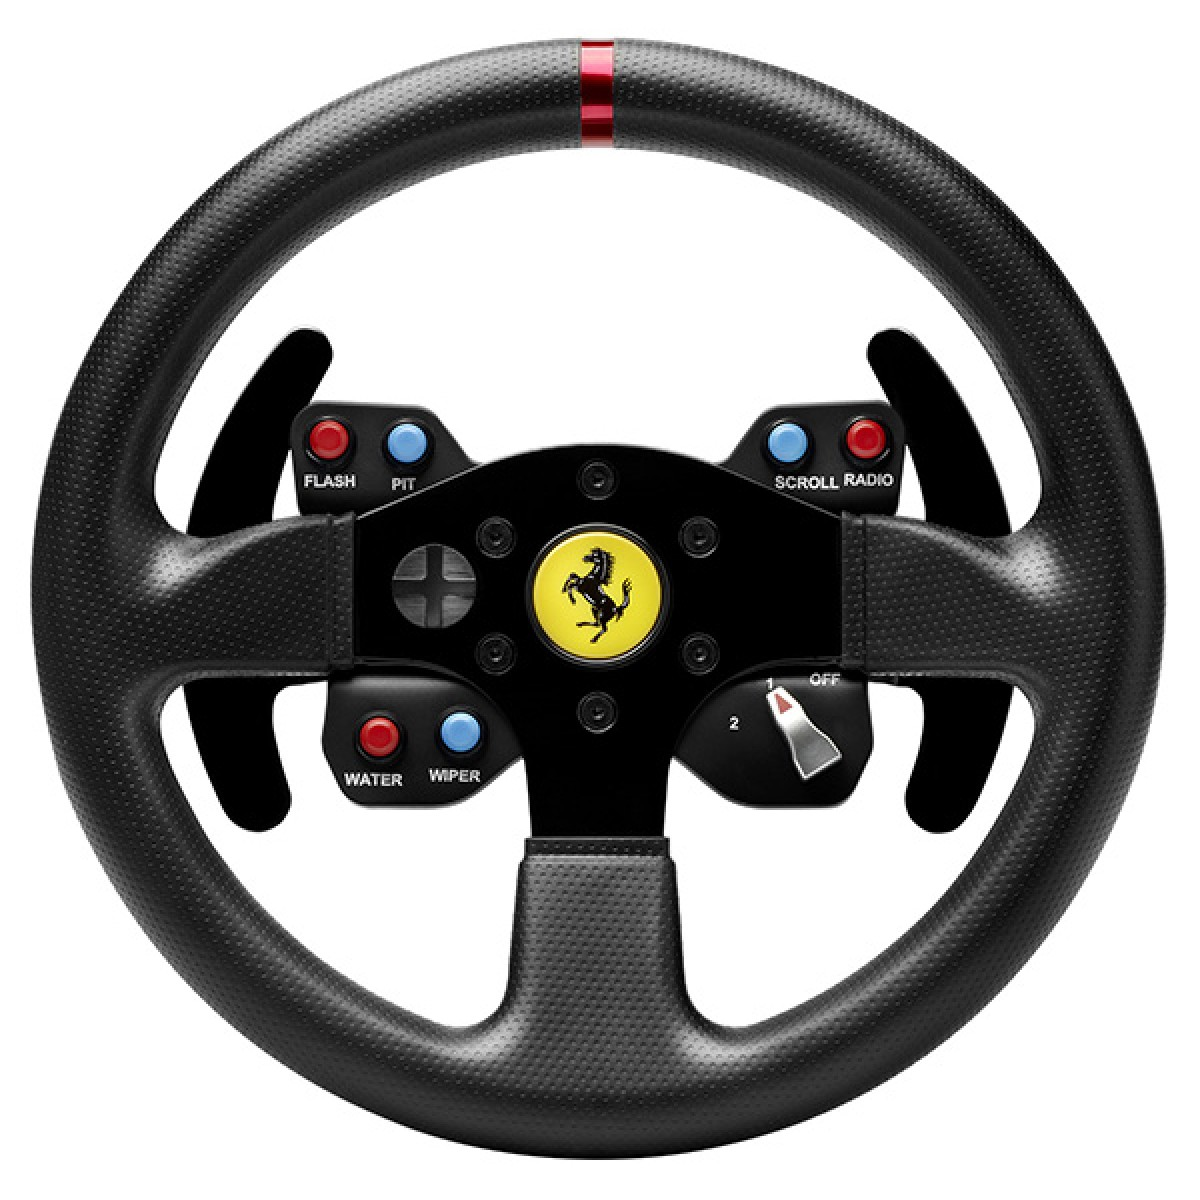 Thrustmaster Ferrari 458 Challenge Wheel ADD-ON  - T300, T500 and TX wheels Base (PC, PS3, Xbox One)